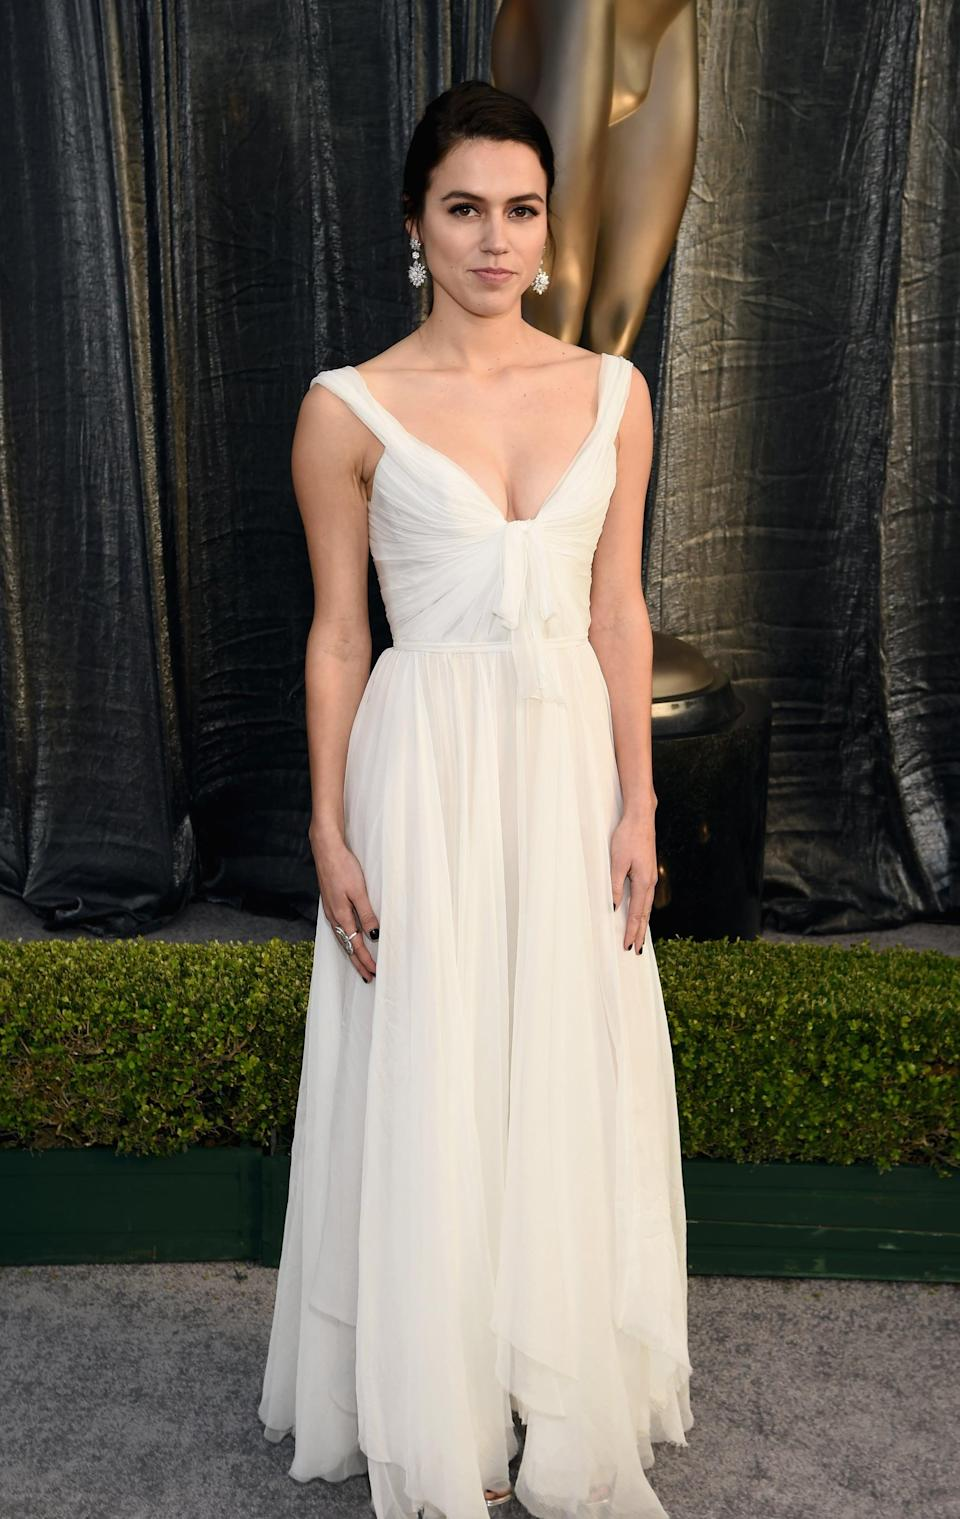 <p>Wearing a white Paolo Sebastian gown with dangling earrings.</p>